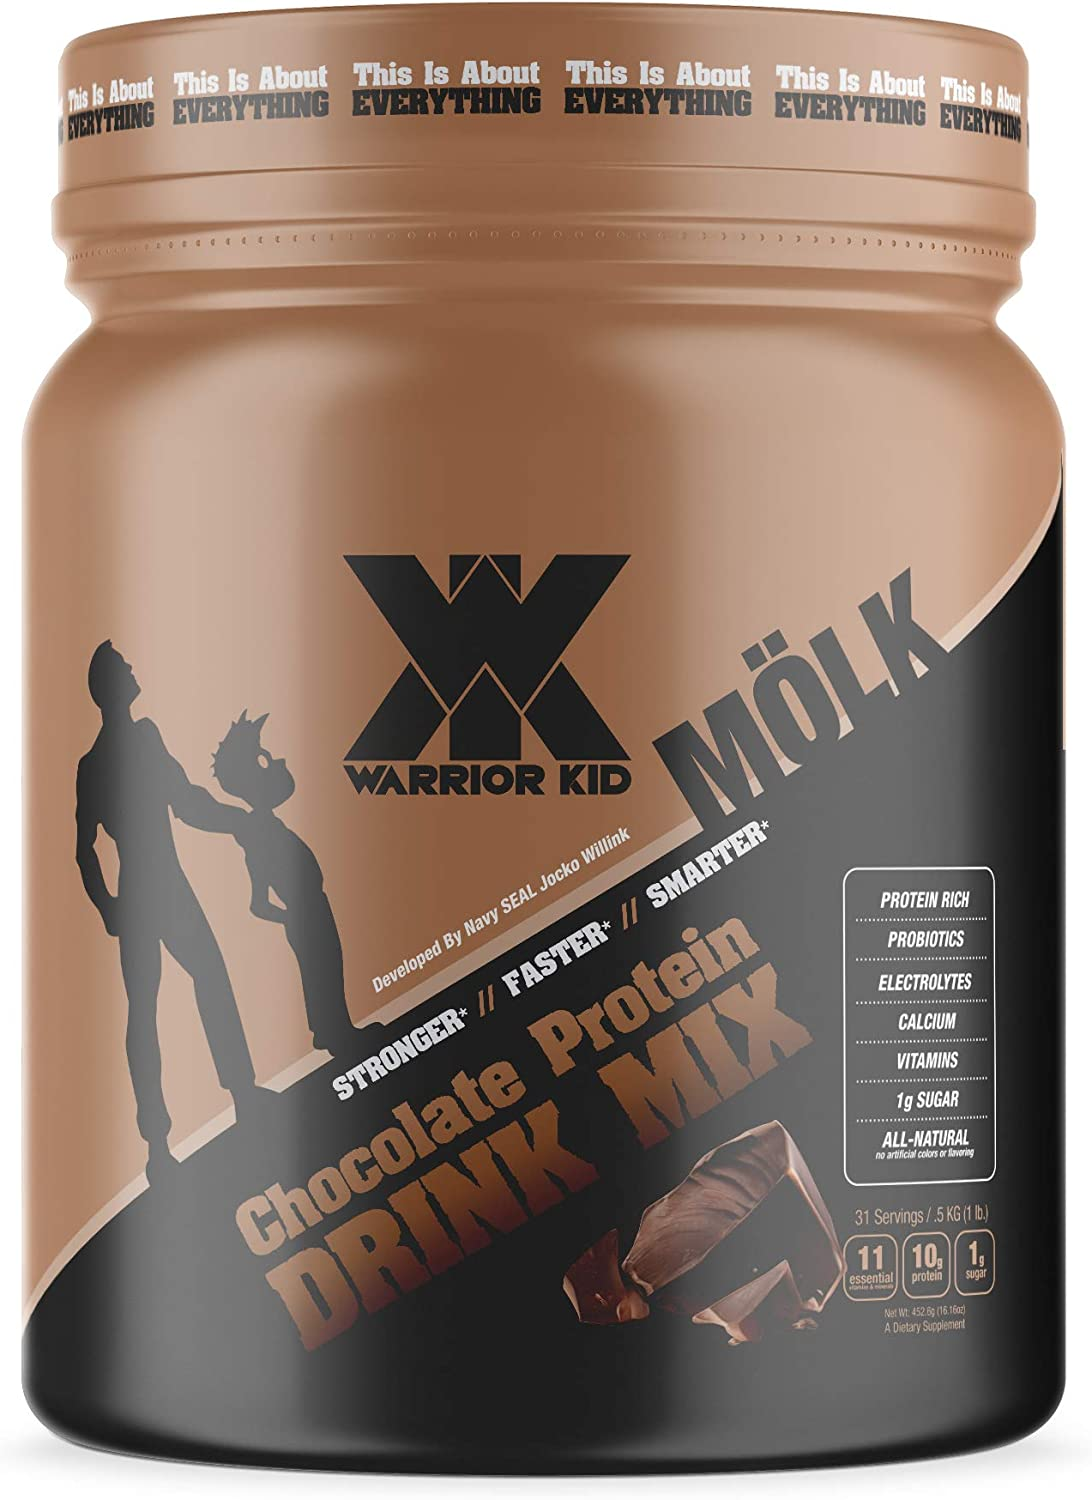 Warrior Kid Chocolate Protein Drink Mix 1 Pound